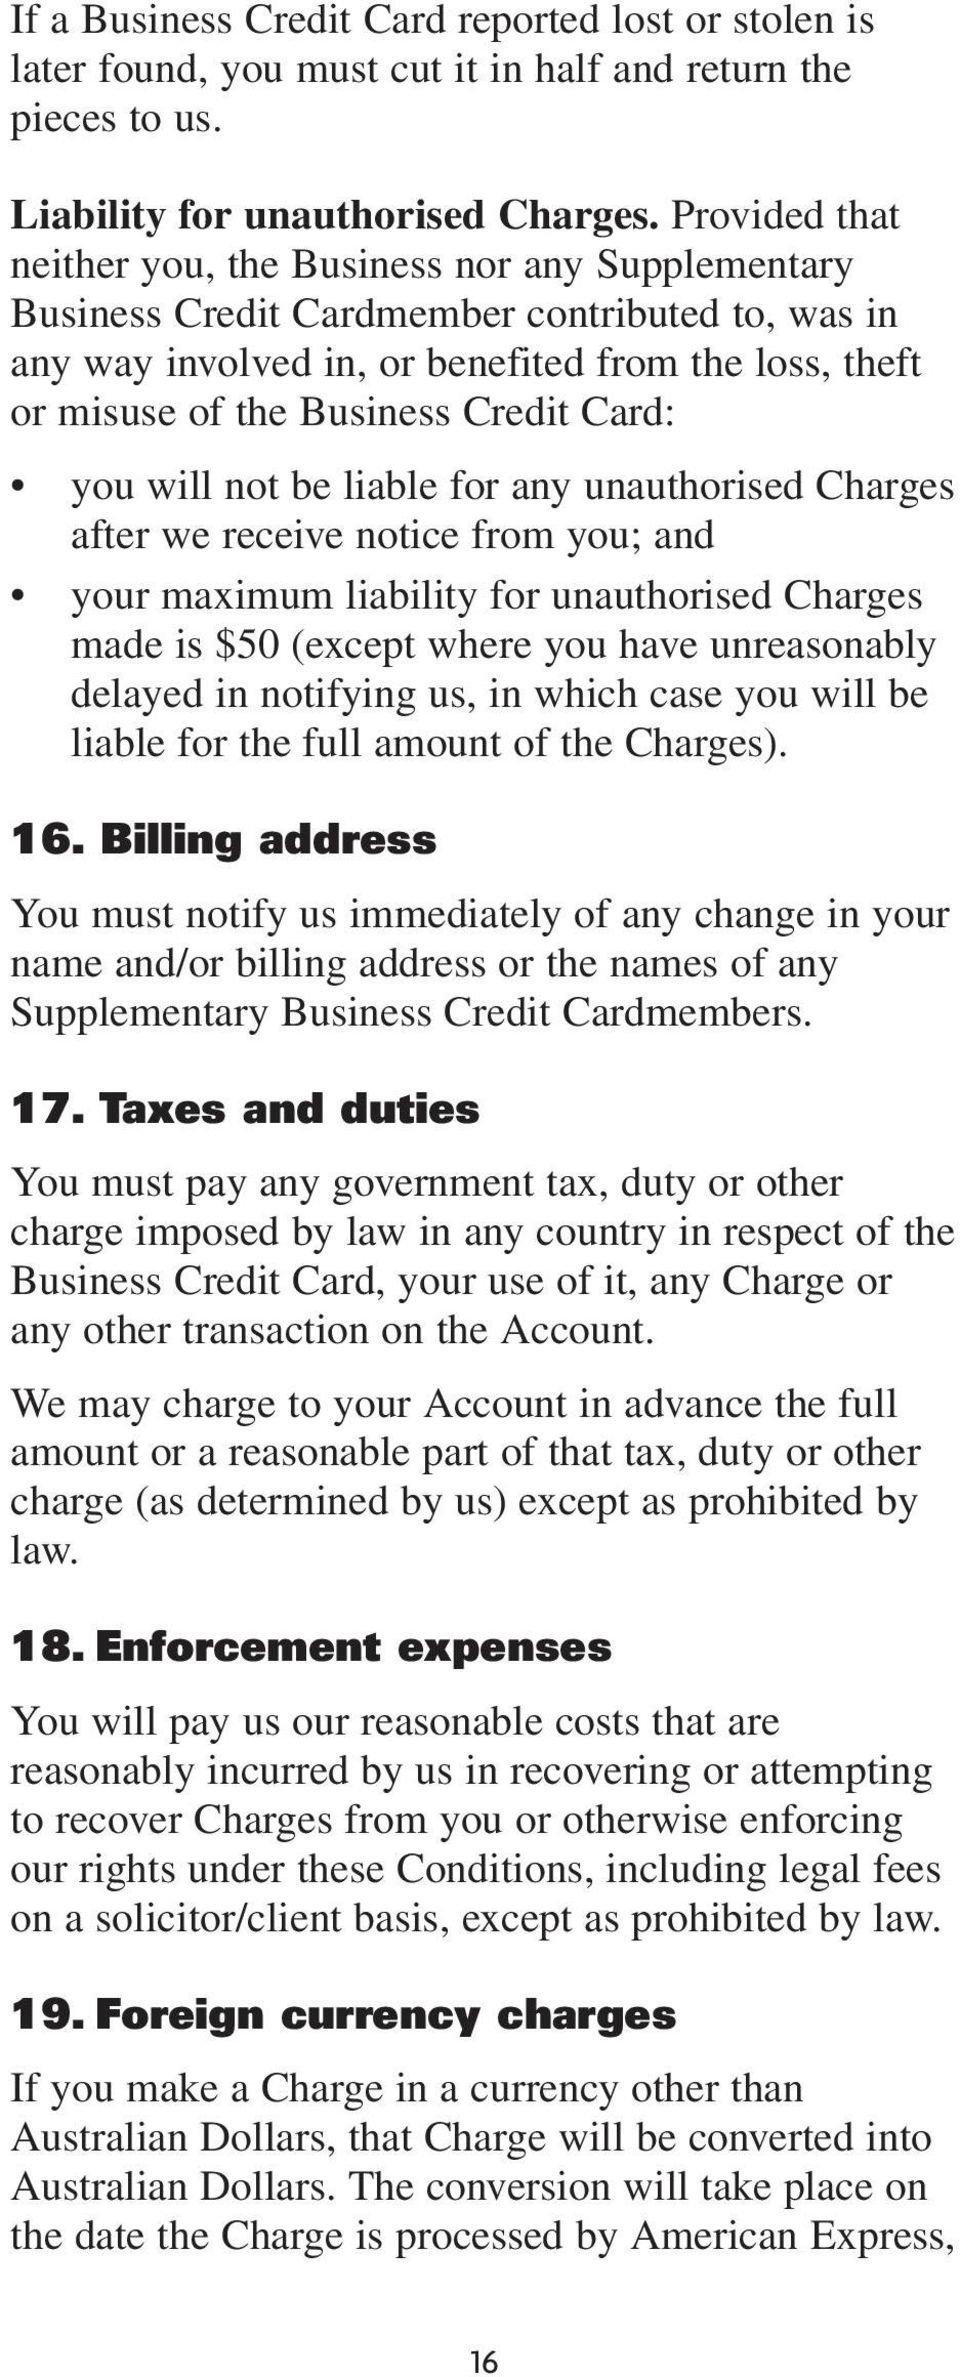 Card: you will not be liable for any unauthorised Charges after we receive notice from you; and your maximum liability for unauthorised Charges made is $50 (except where you have unreasonably delayed